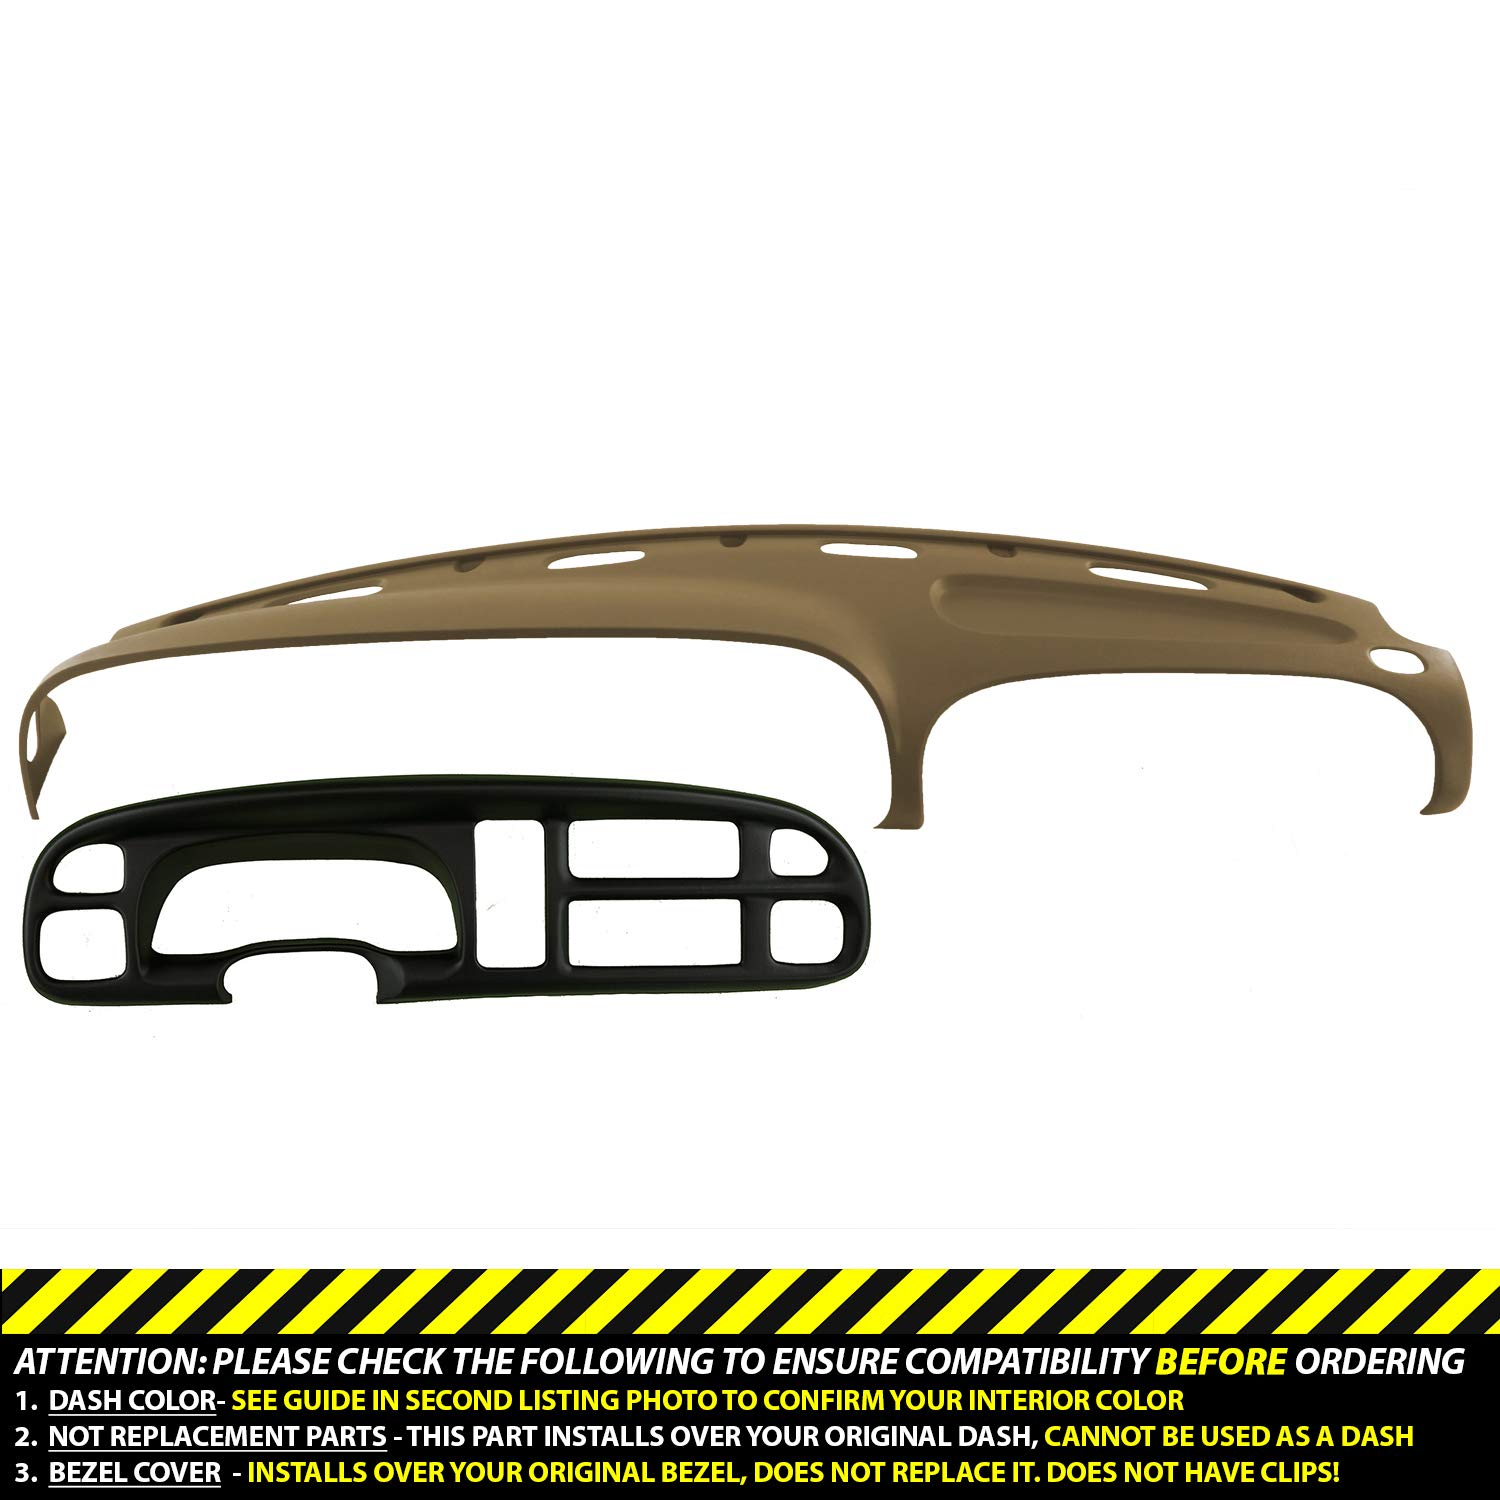 DashSkin Molded Dash & Bezel Cover Kit Compatible with 99-01 Dodge Ram in Camel Tan